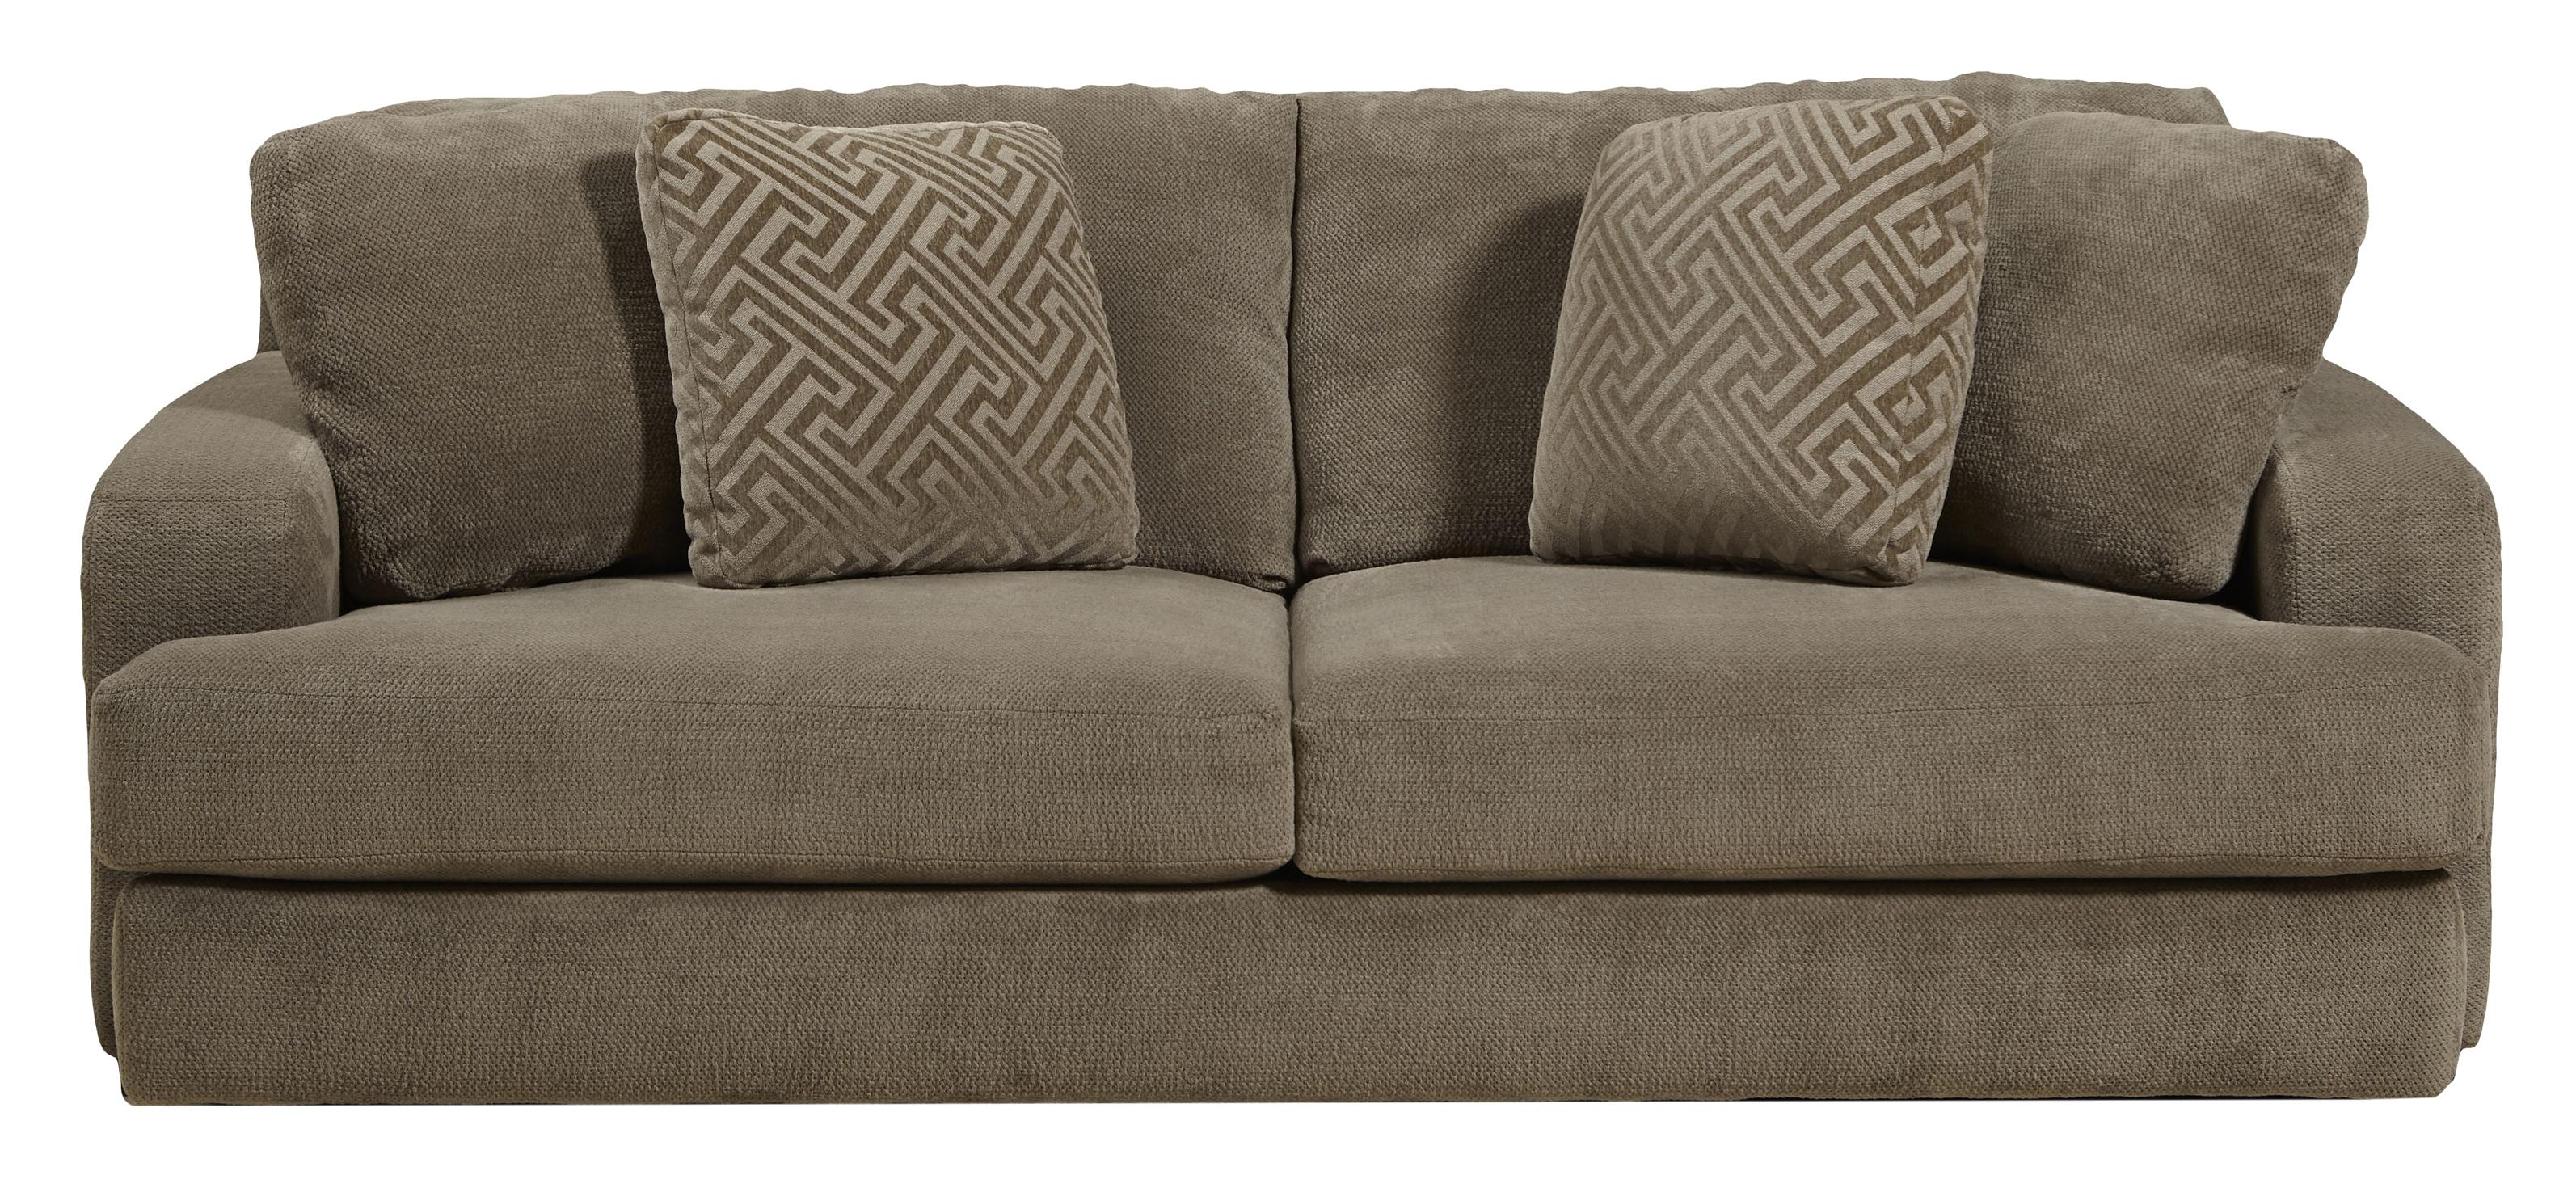 jackson sofa west elm trent leather twin sleeper in chenille fabric by 4238 03